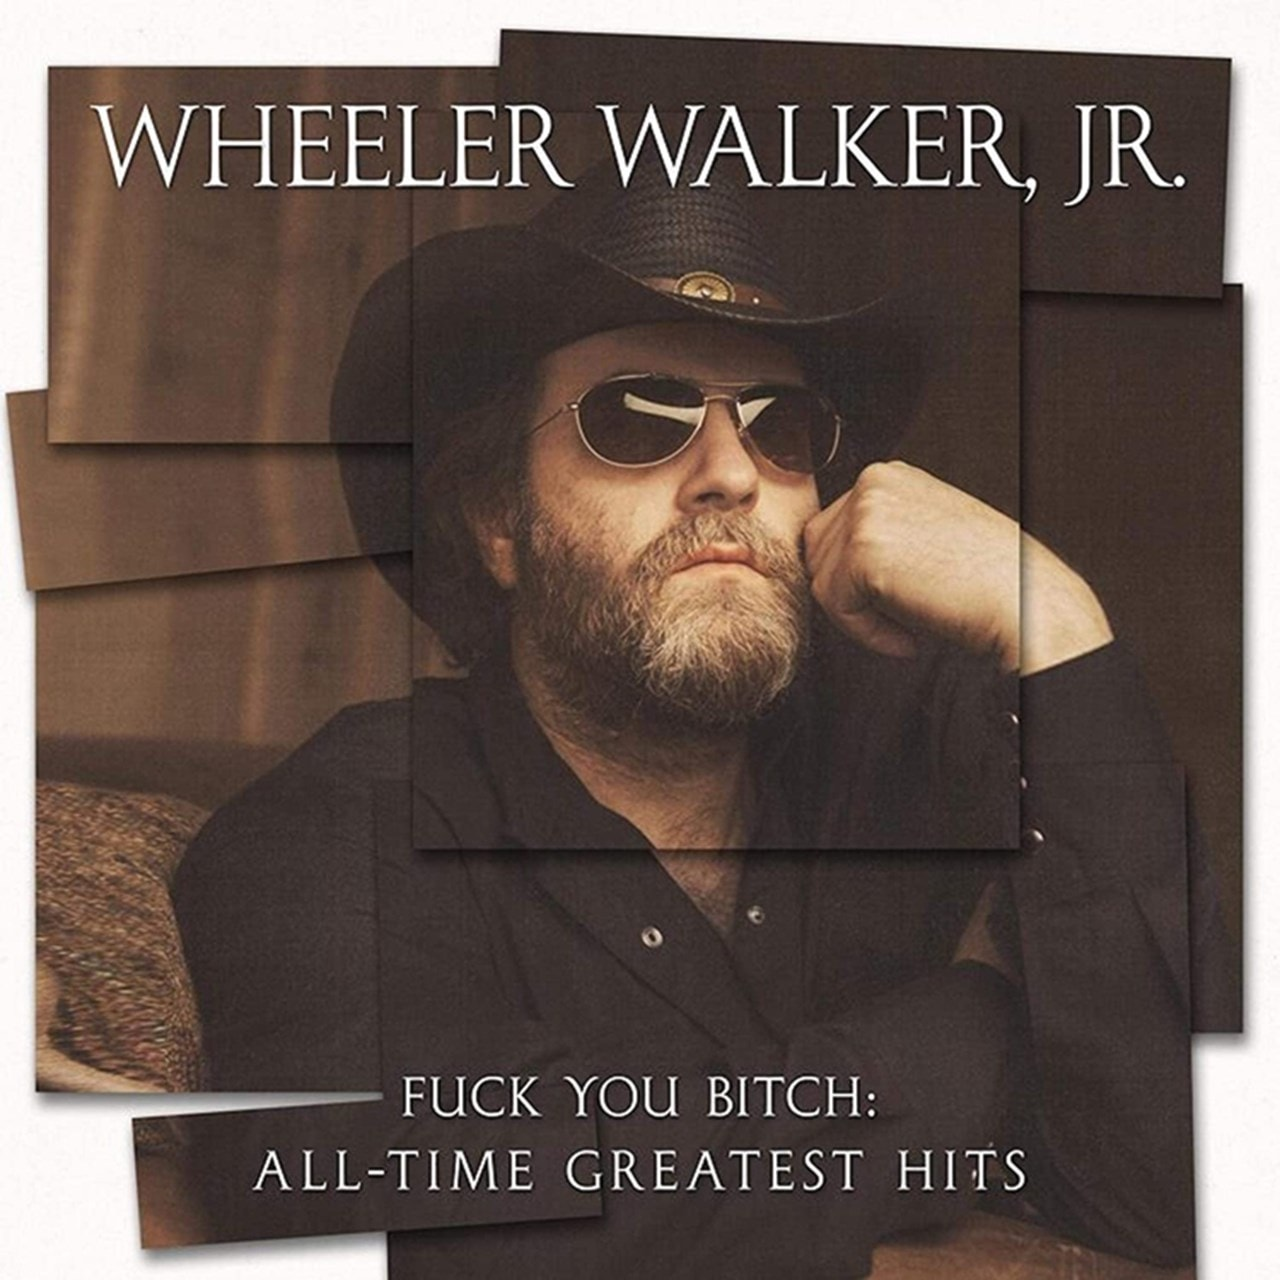 Fuck You Bitch: All-time Greatest Hits - 1